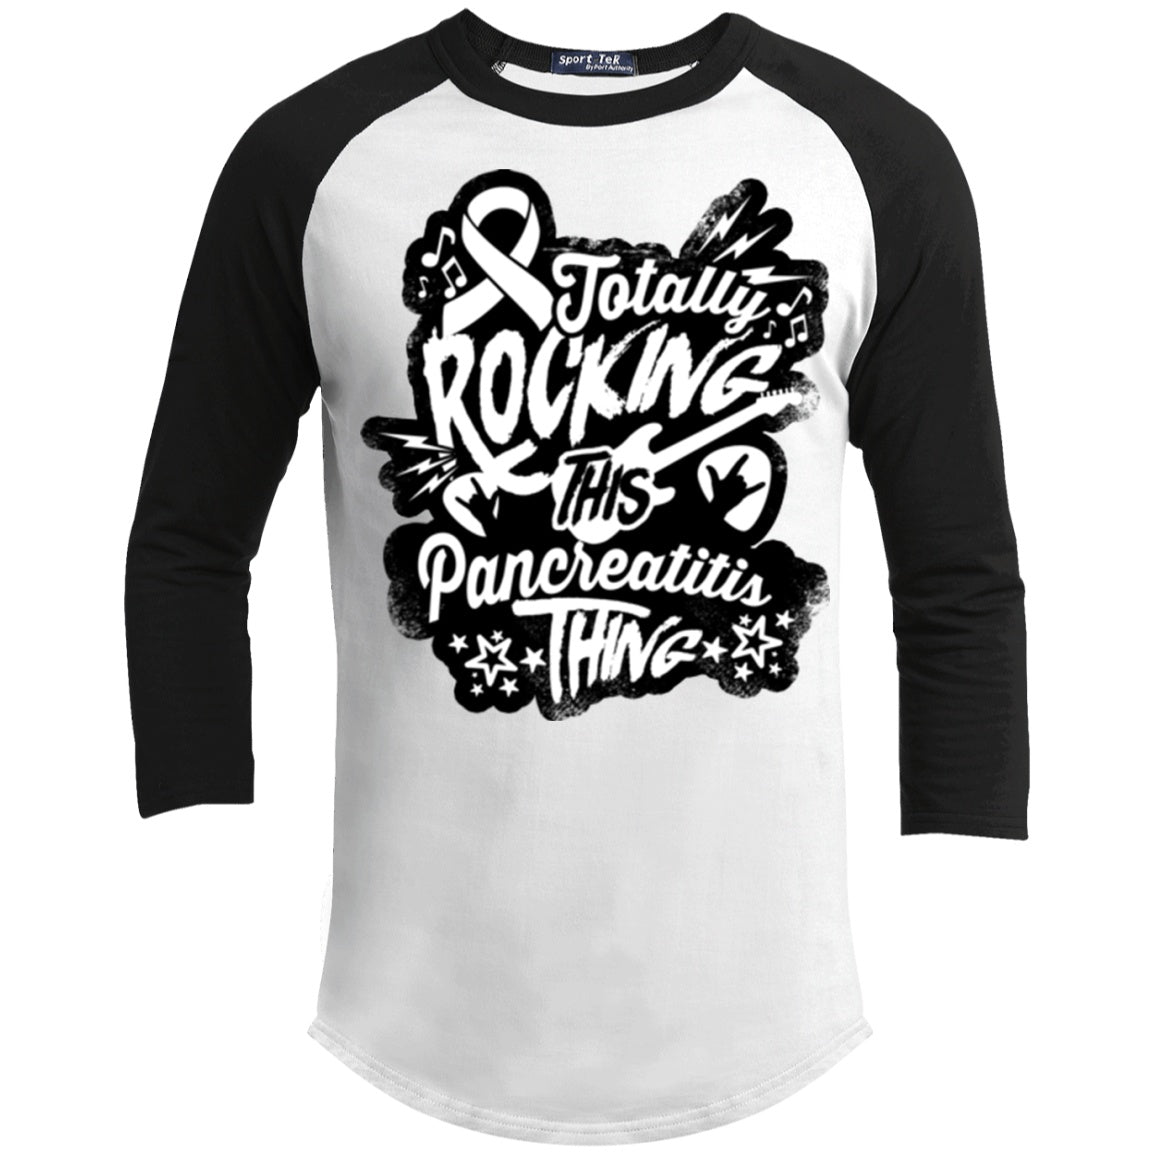 Rocking Pancreatitis Baseball Shirt - The Unchargeables